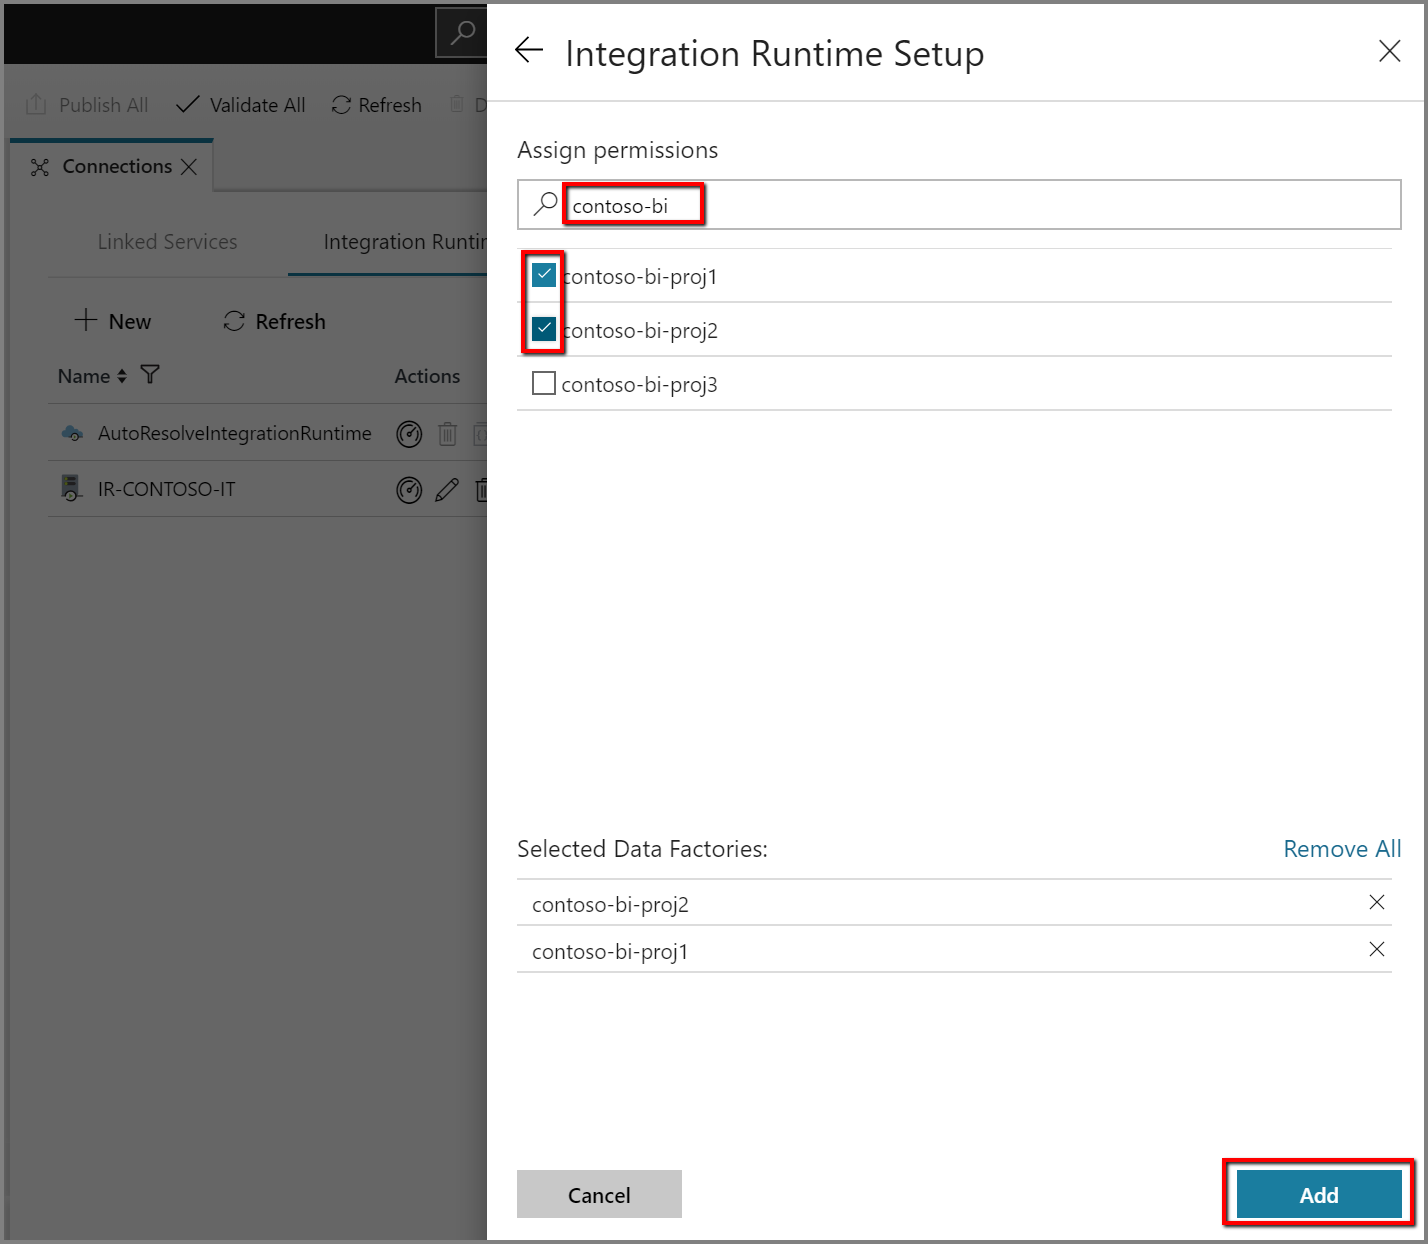 Create a self-hosted integration runtime in Azure Data Factory